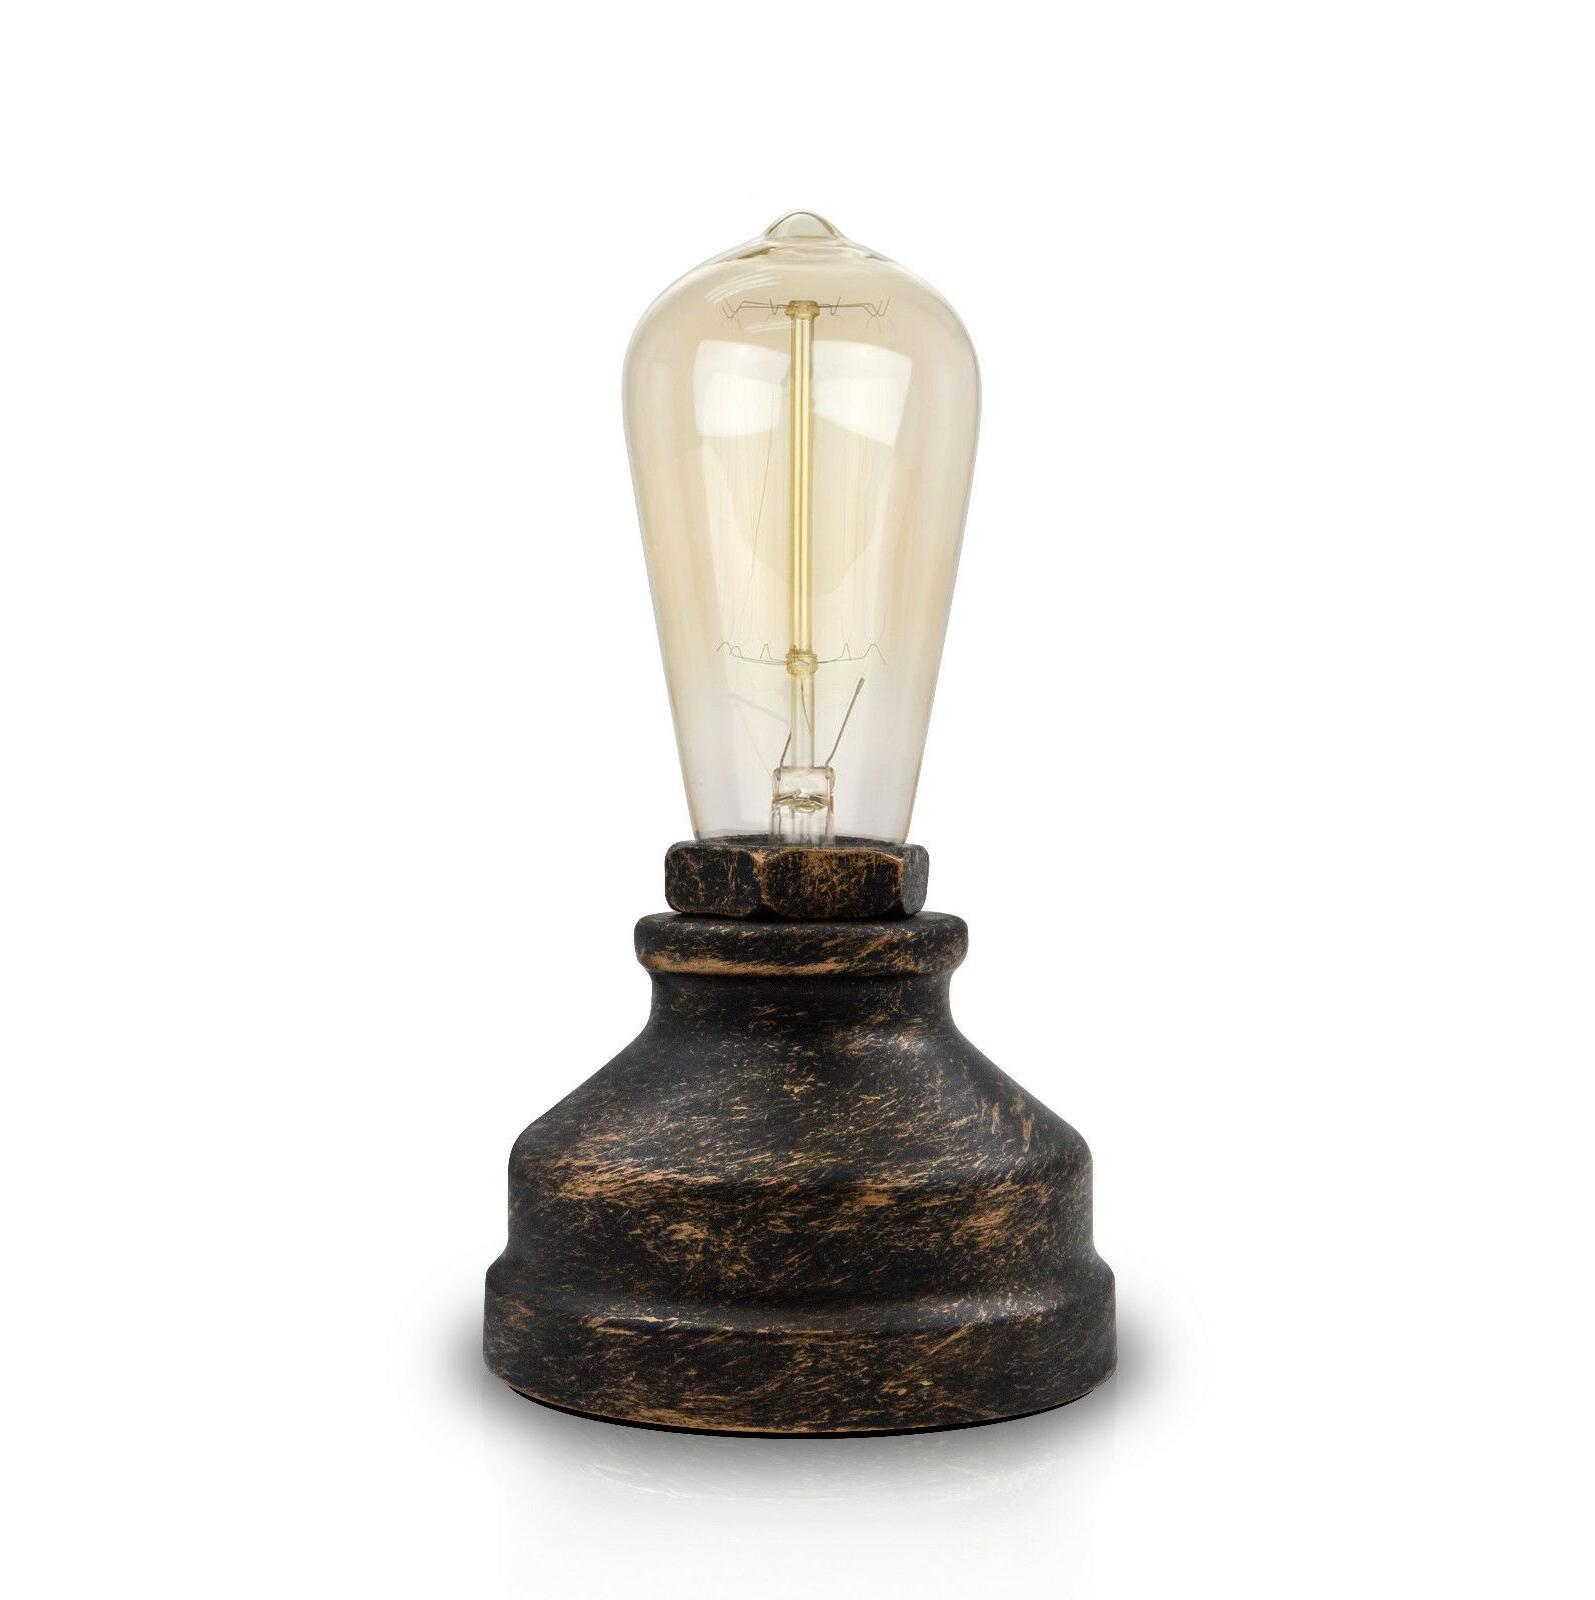 Vintage Lamp Desk Small Industrial Touch Light